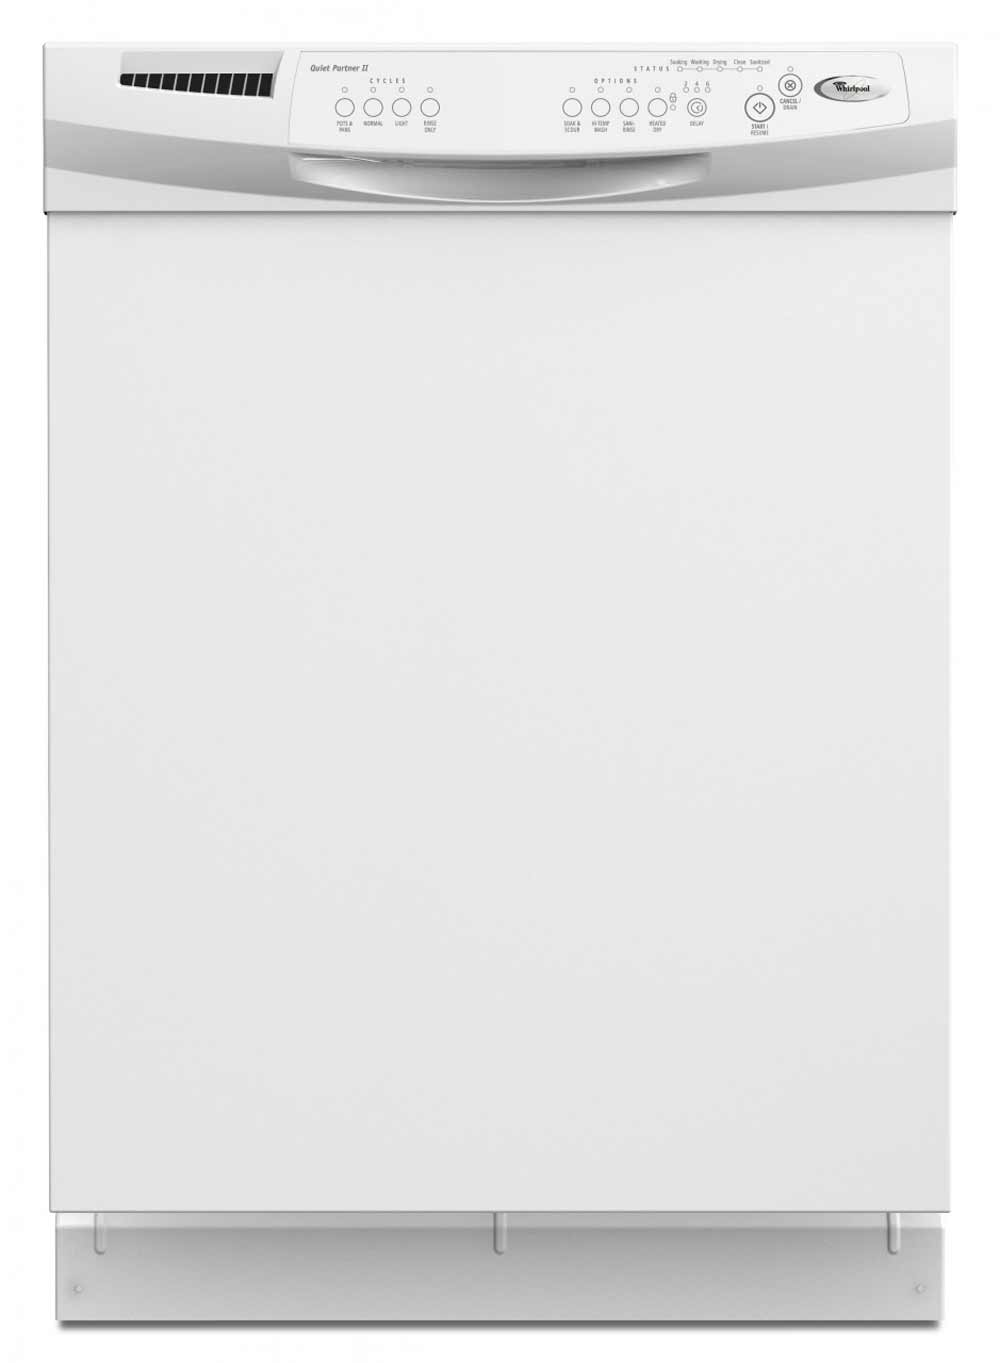 Whirlpool White Tall Tub with Built In Dishwasher